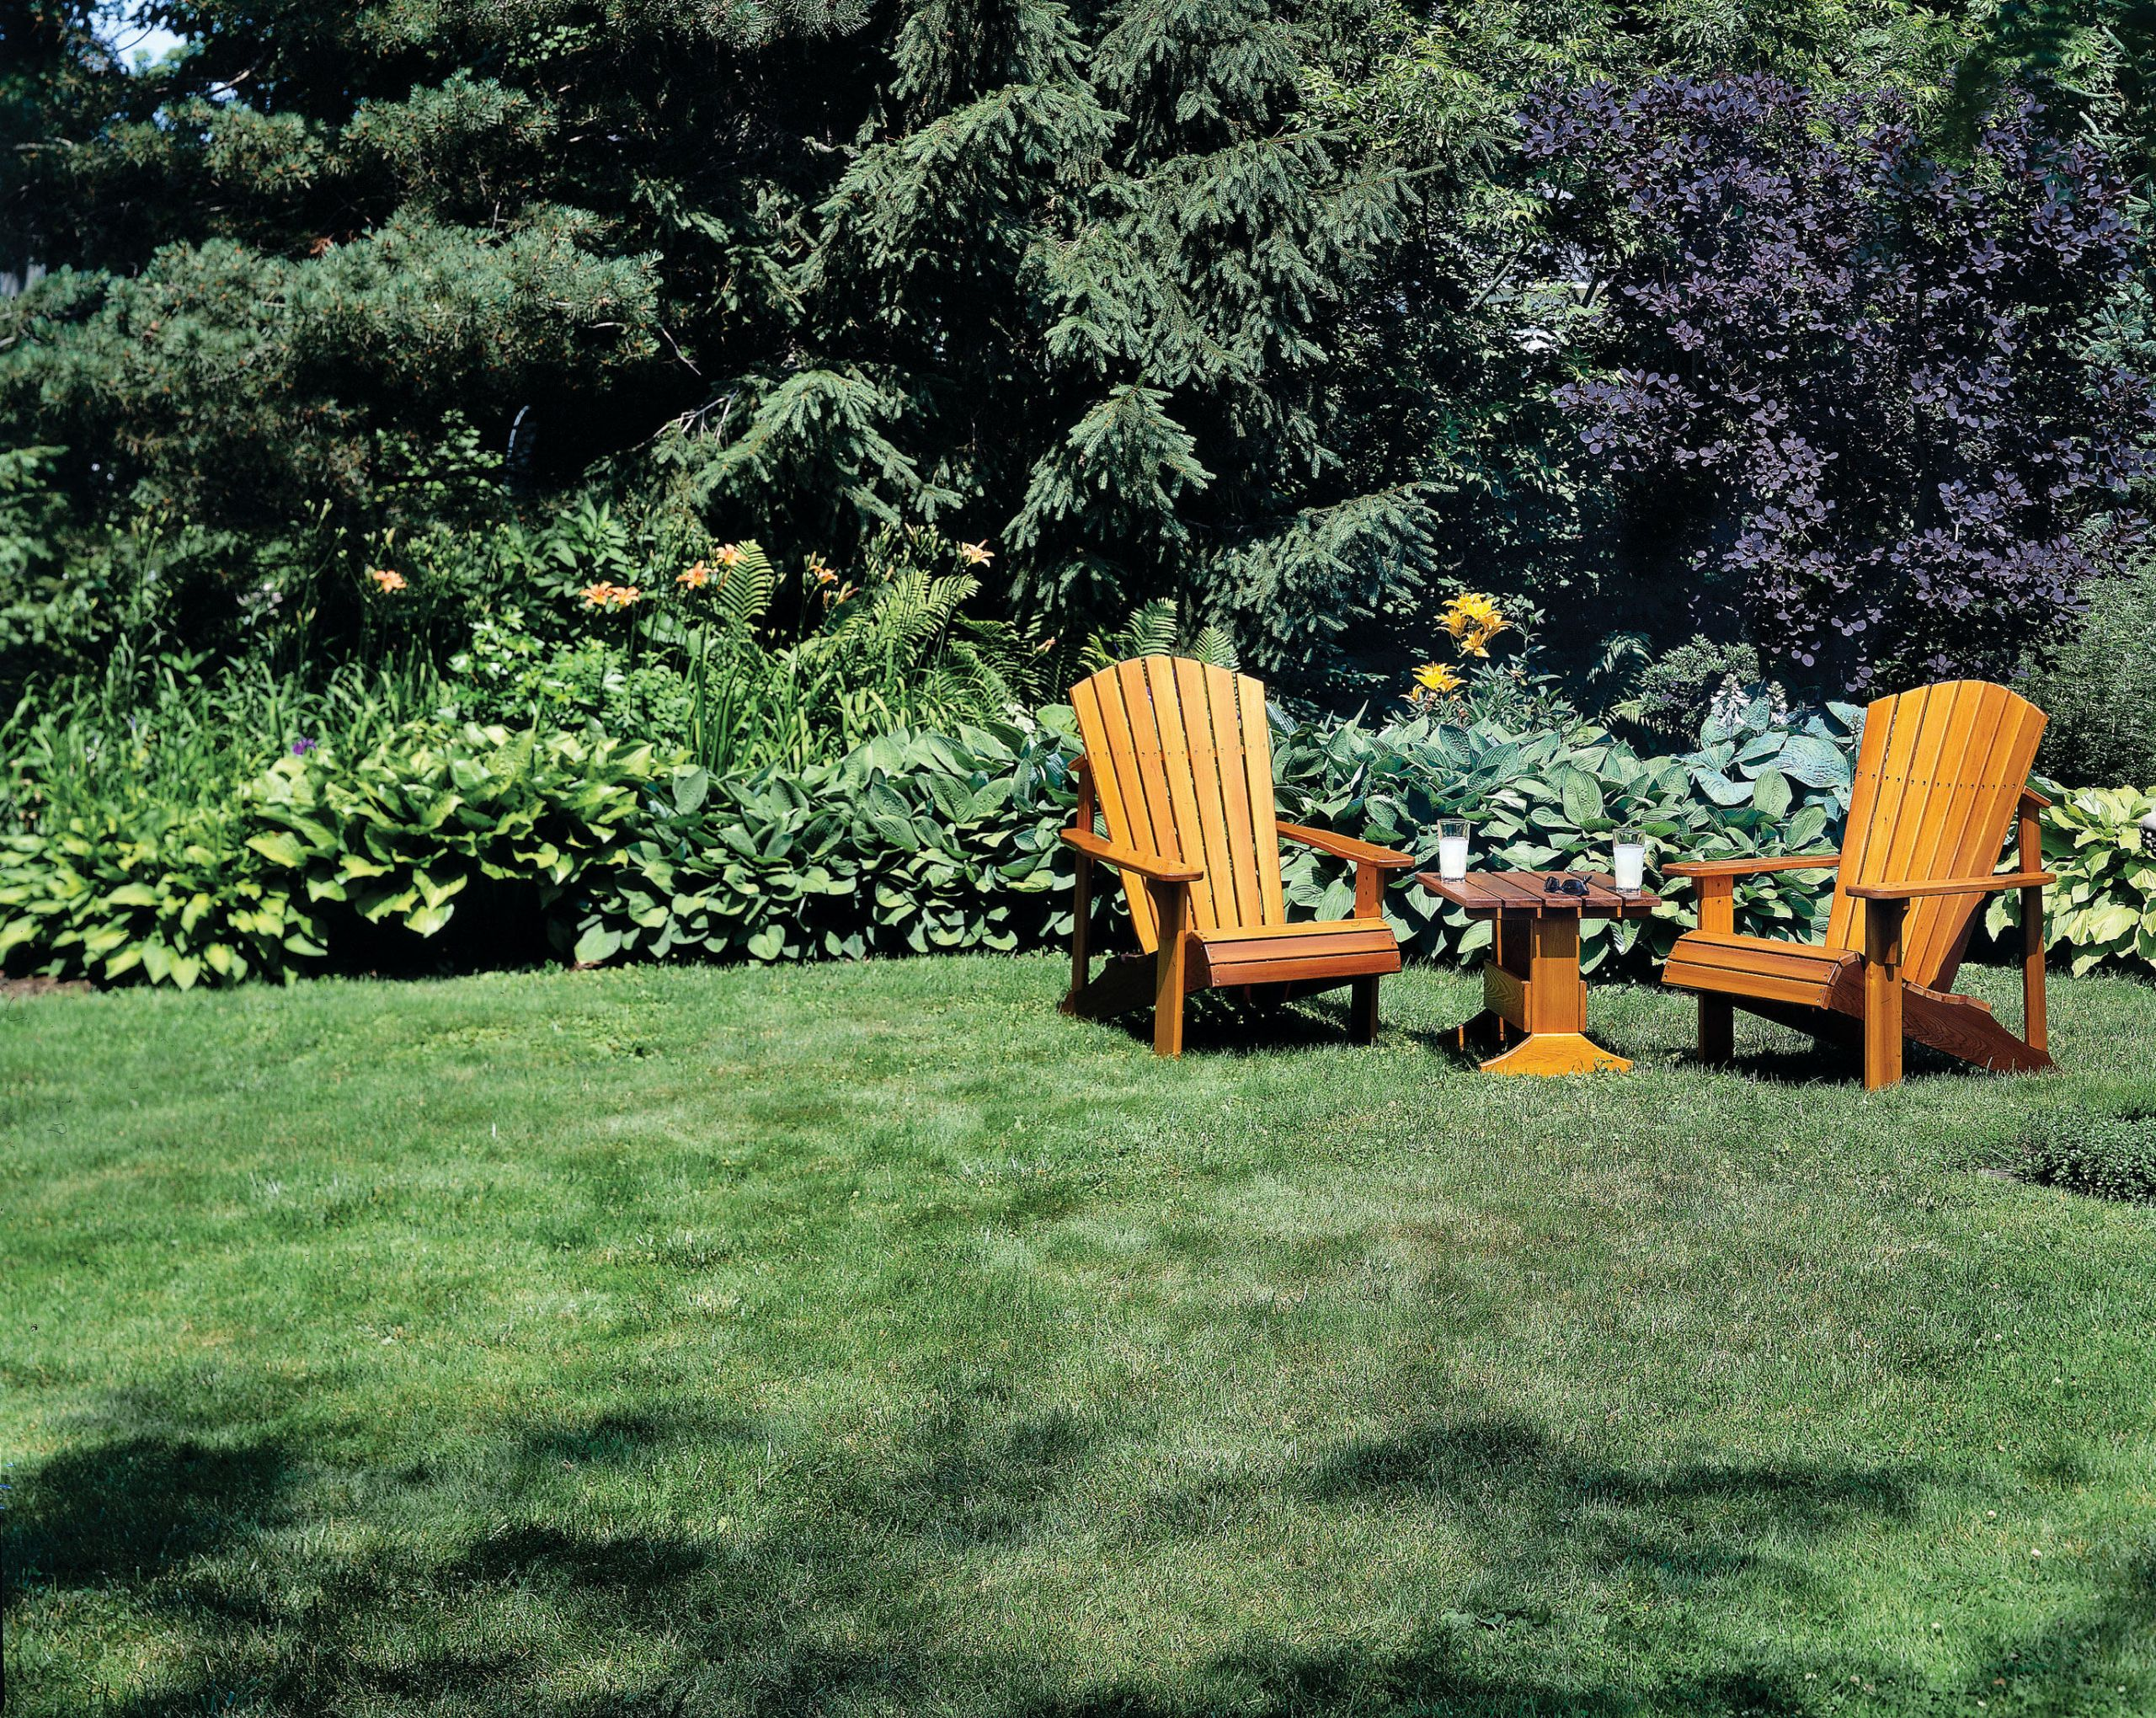 These Adirondack chair plans will help you build an outdoor furniture set that becomes the centerpiece of your backyard. & Easy Adirondack Chair Plans - How to Build Adirondack Chairs \u0026 Tables